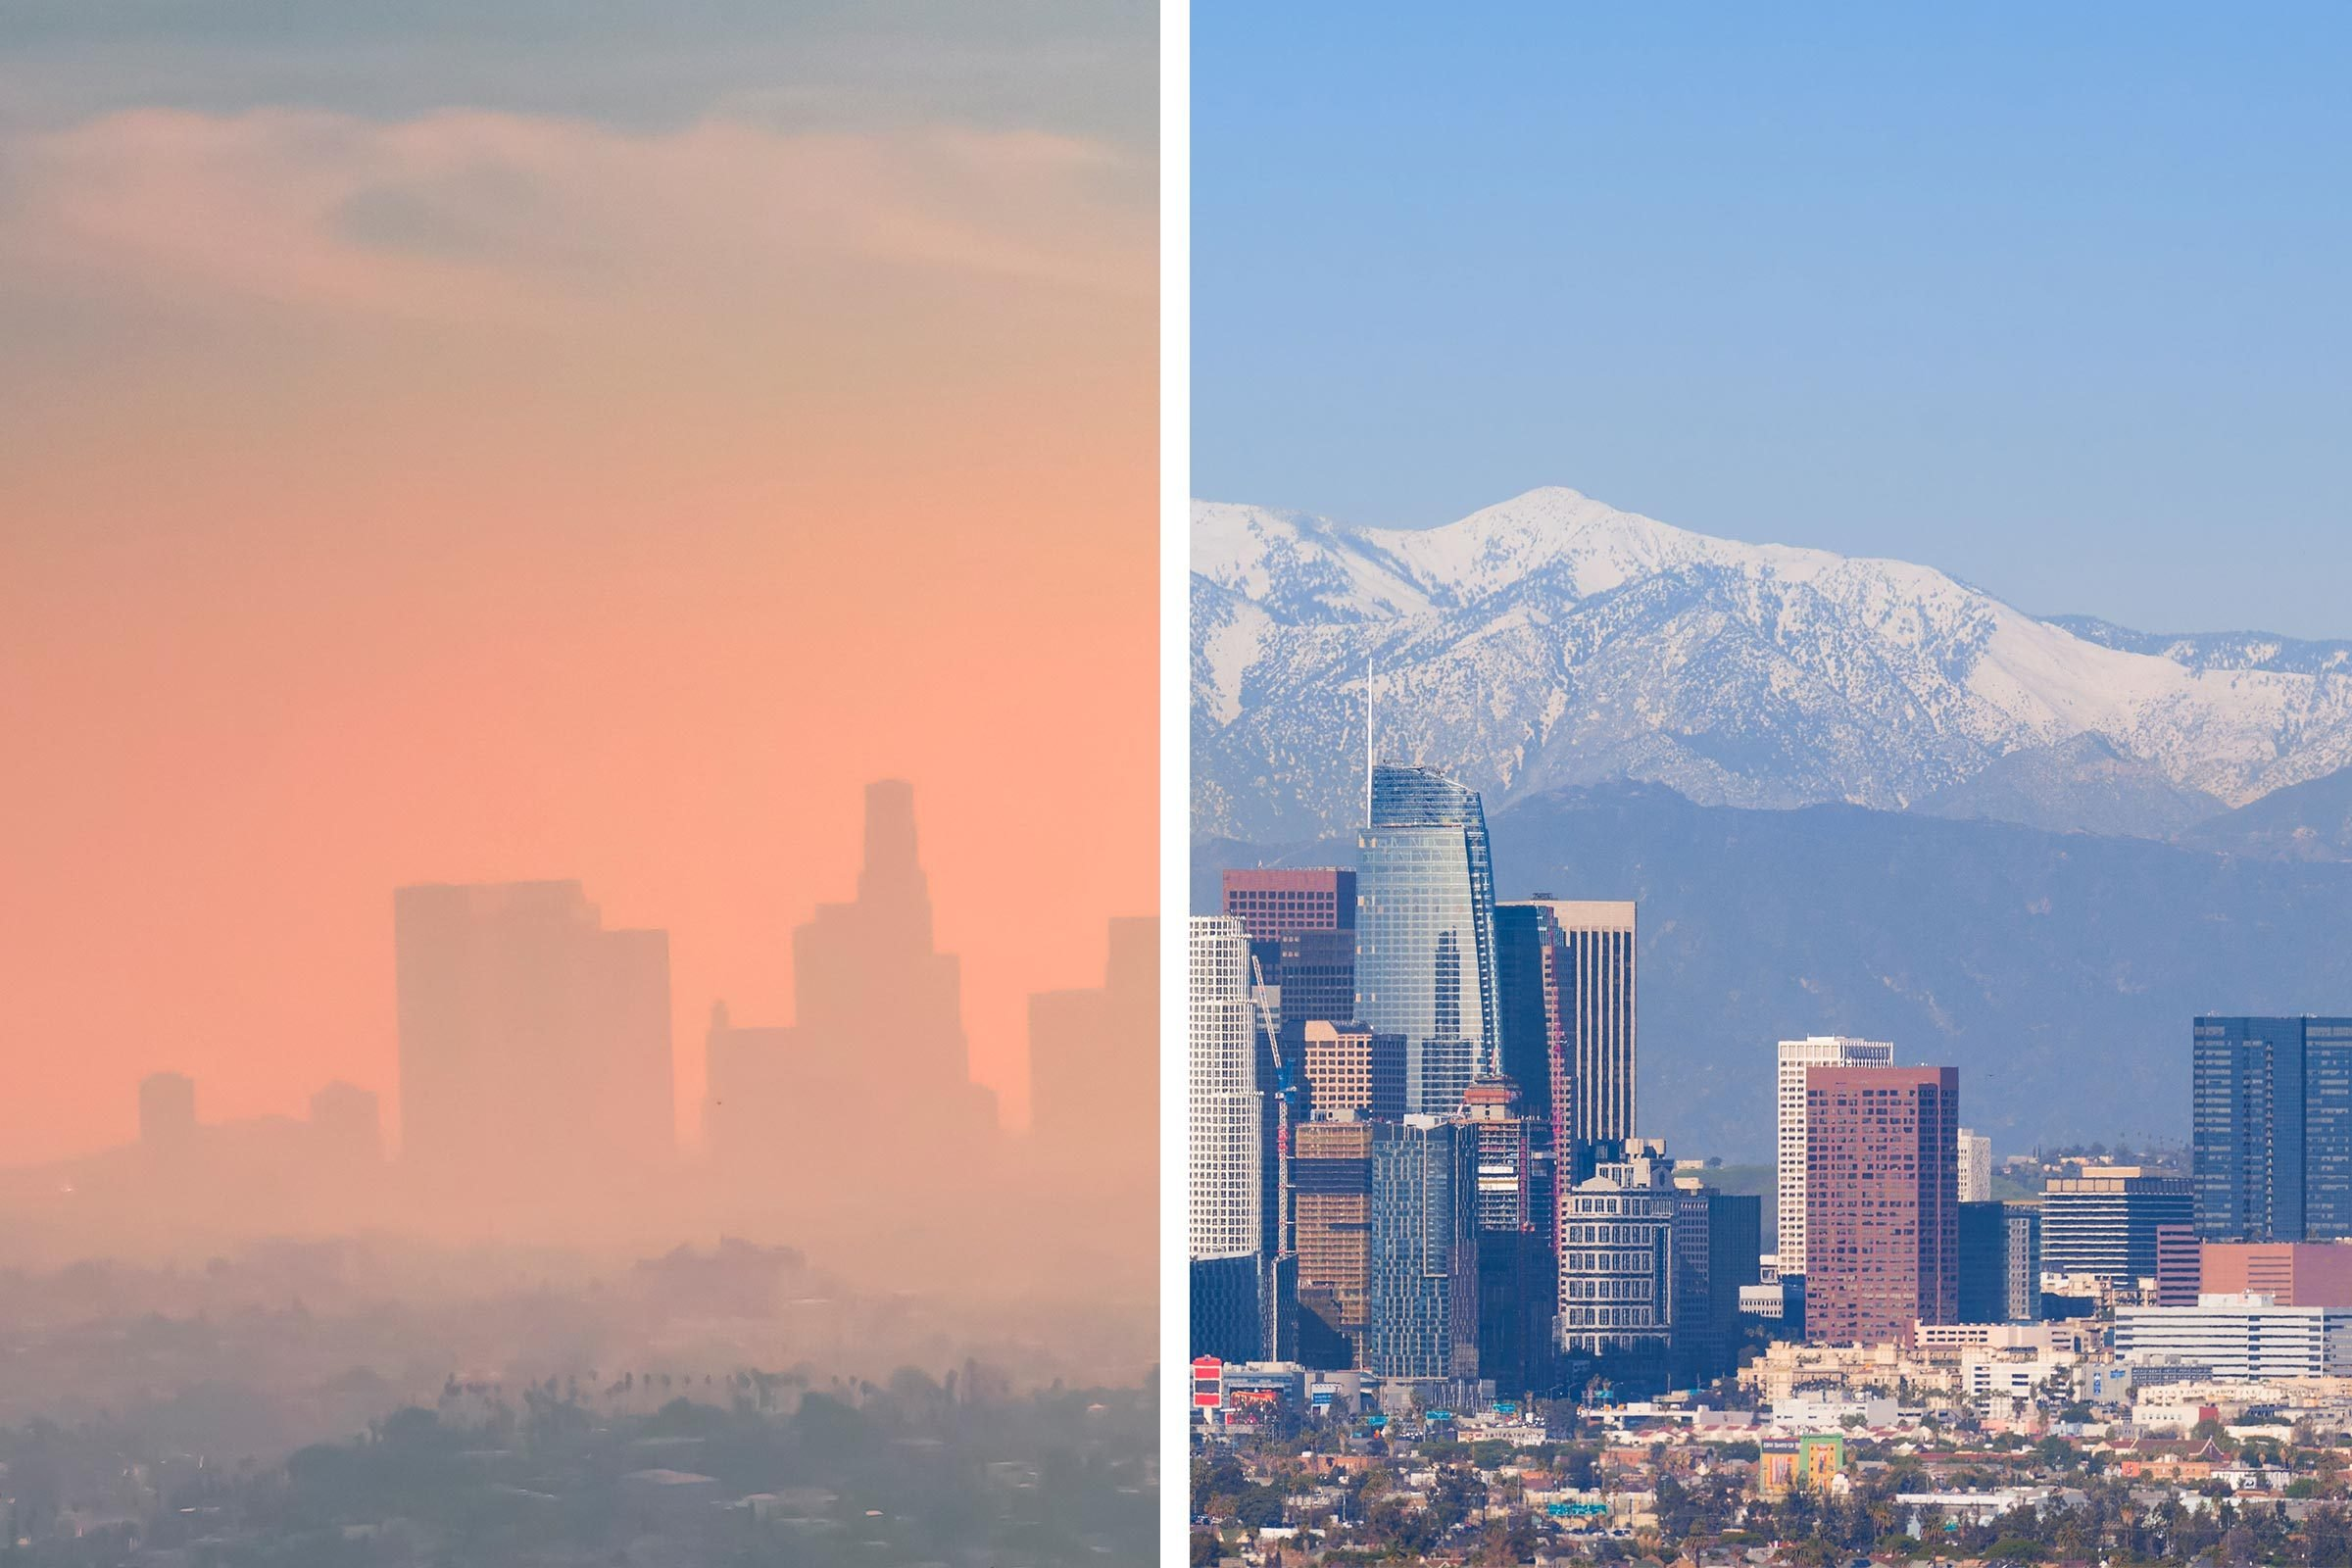 Before/After Los Angeles